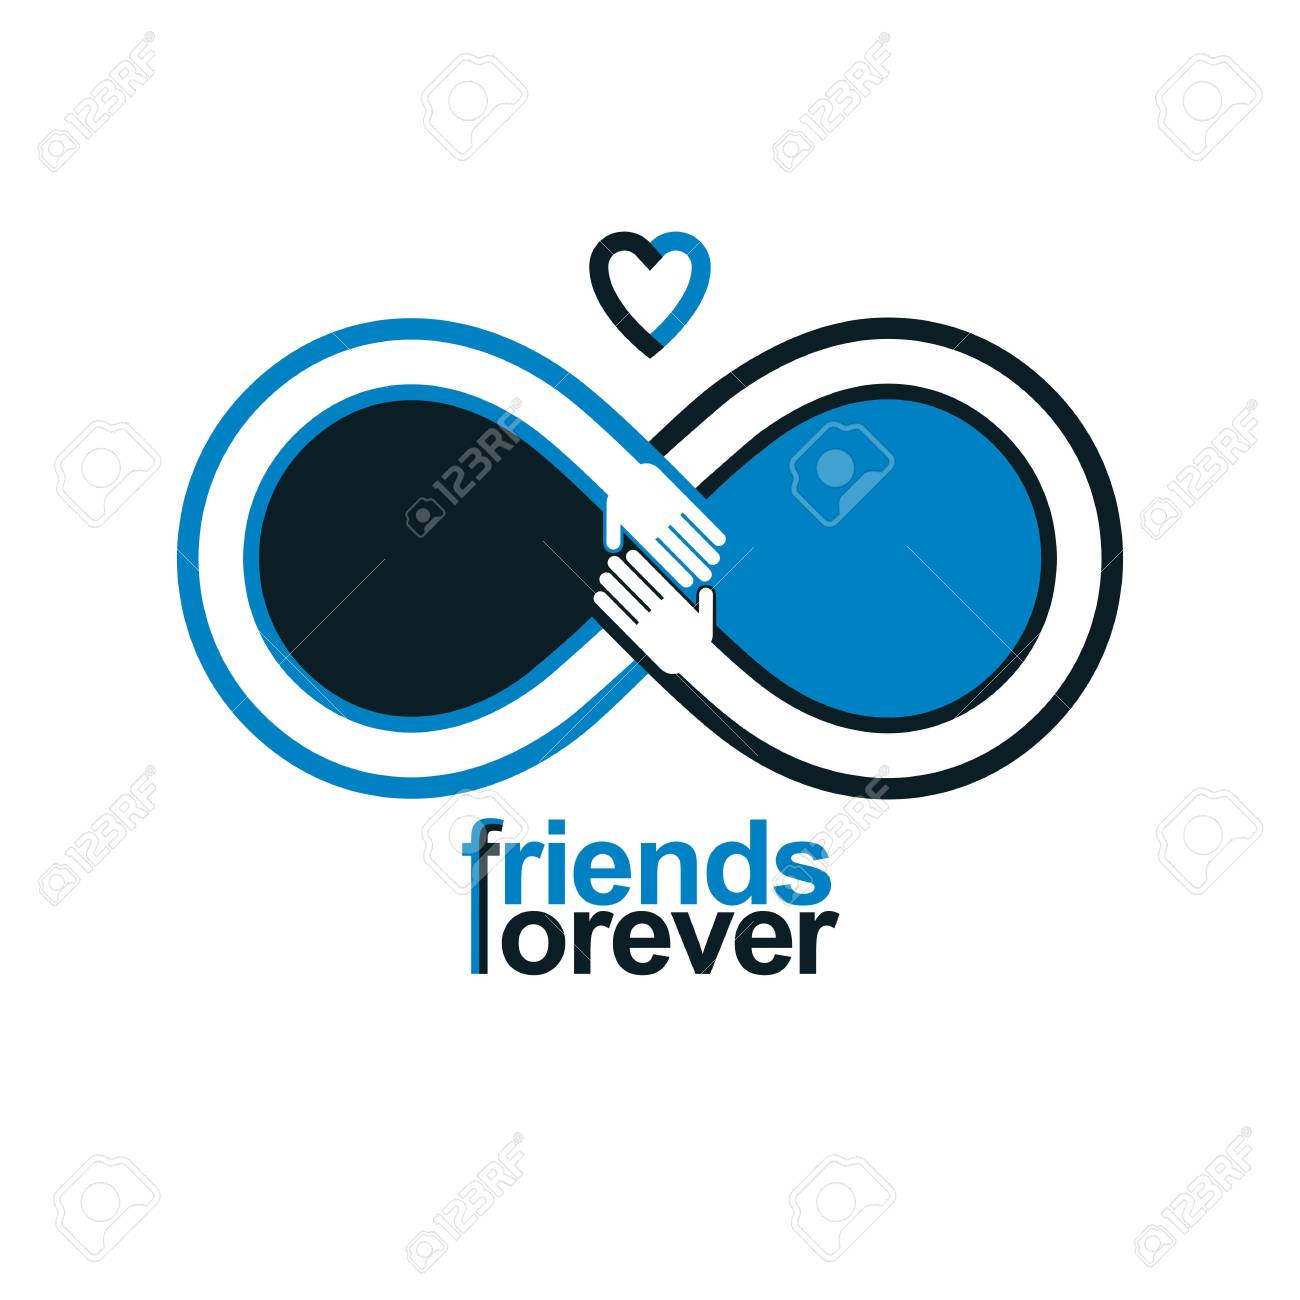 Friends forever everlasting friendship unusual vector logo friends forever everlasting friendship unusual vector logo combined with two symbols of infinity and human buycottarizona Choice Image